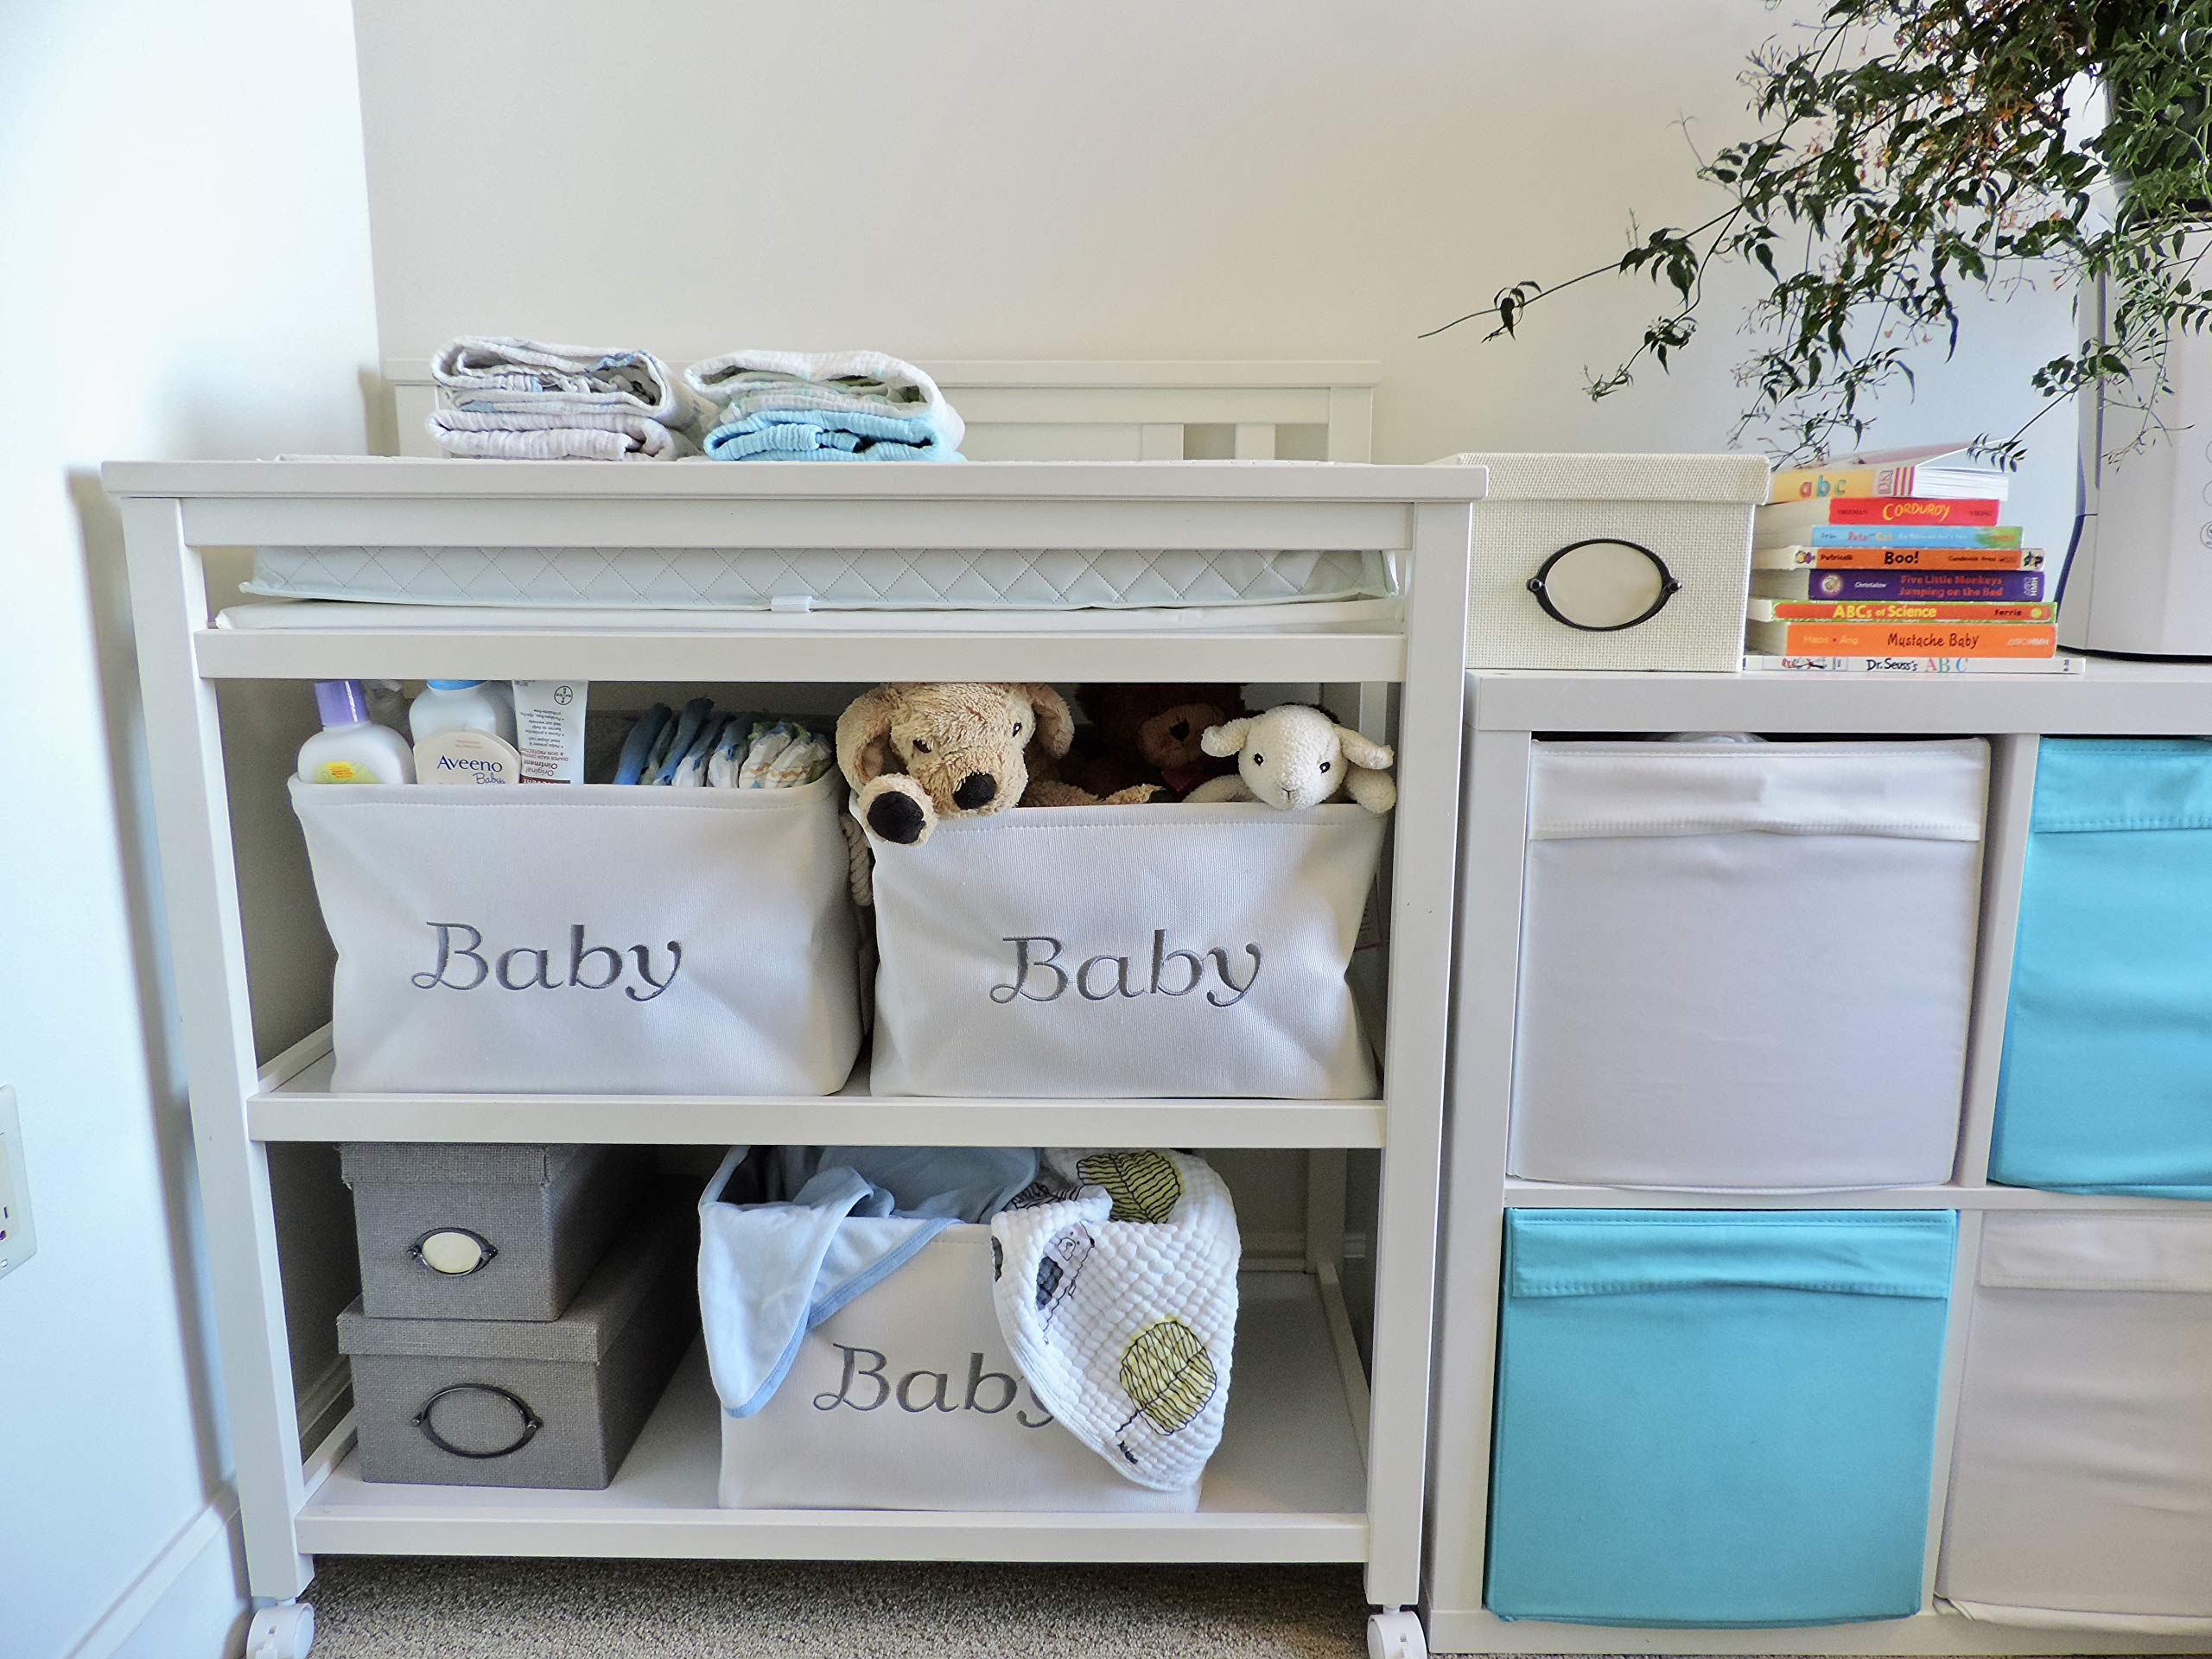 Storage Basket for Nursery, Baby girl or boy, White Canvas fabric Storage Bin with Gray Embroidering. Perfect as Nursery Organizer and Storage, Decorative storage box. Great Baby Shower Basket idea.